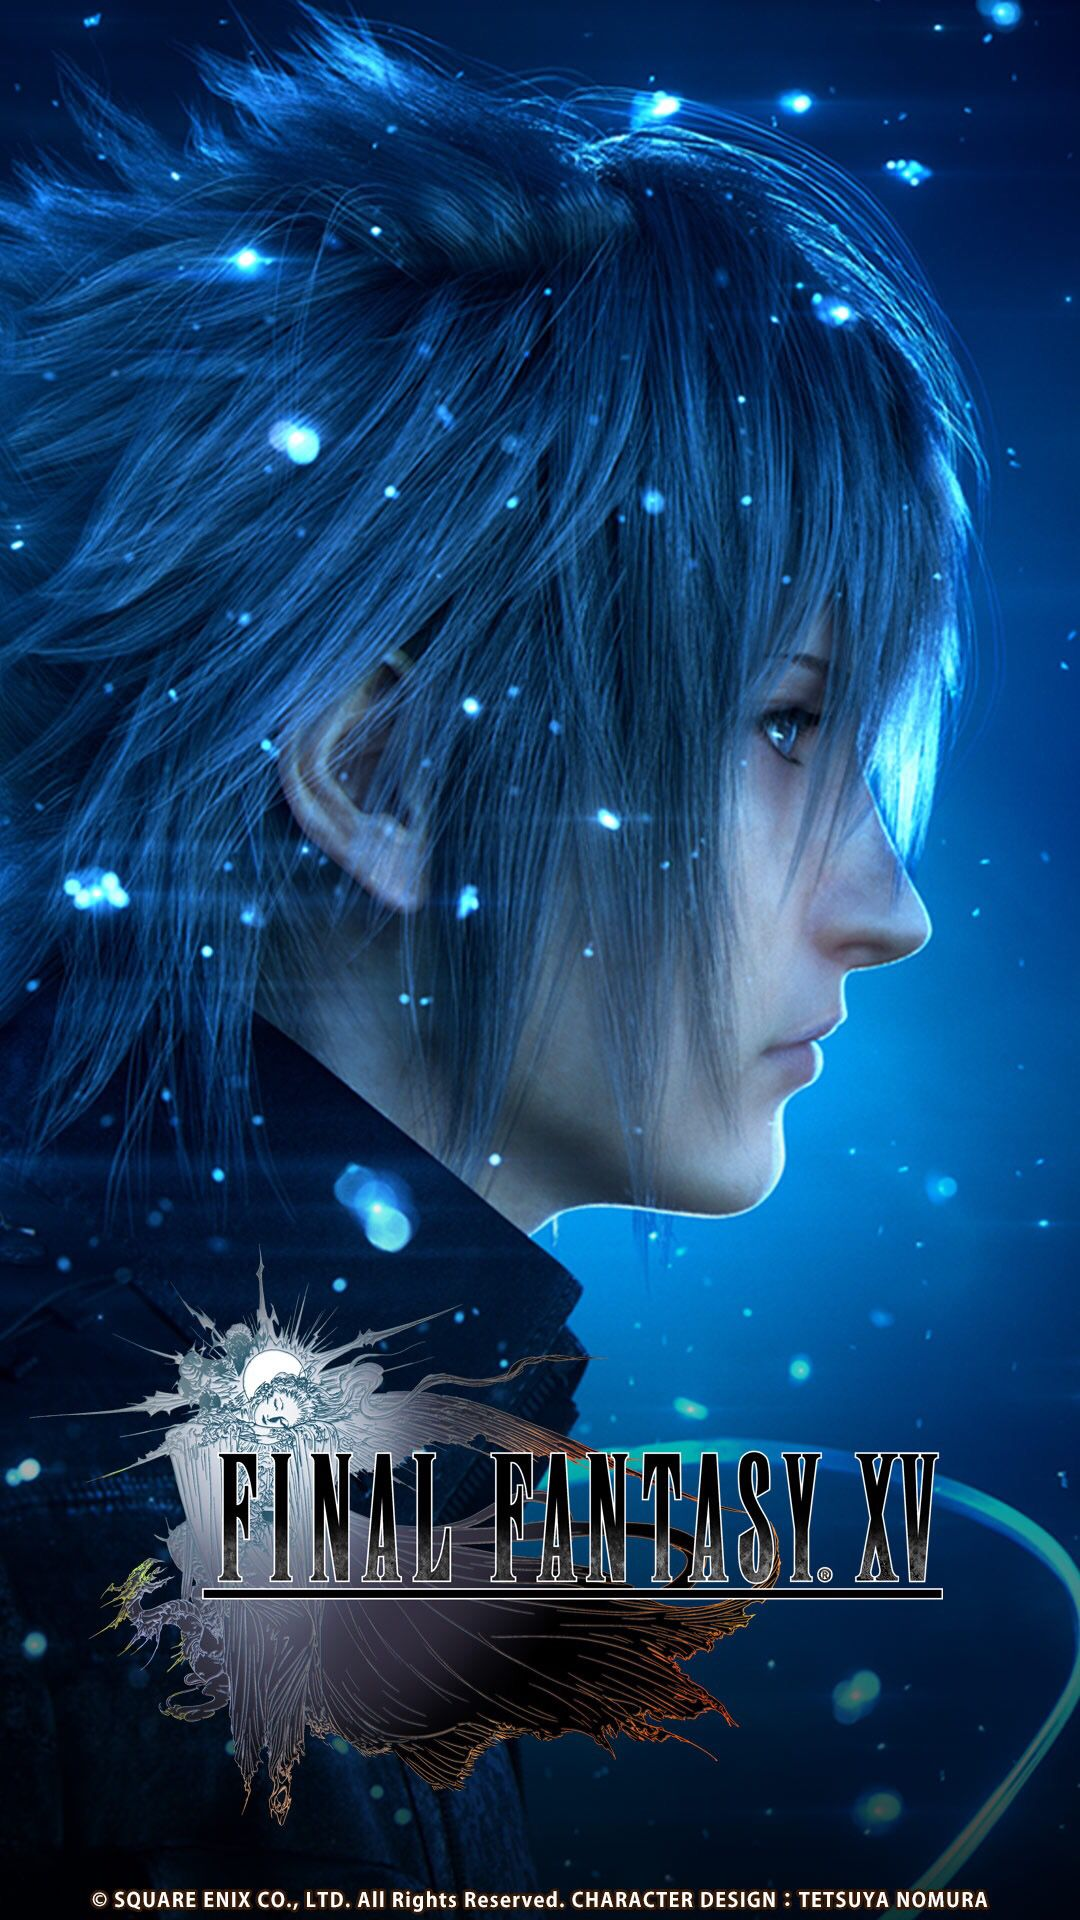 Final Fantasy 15 Noctis Wallpapers For Android On Wallpaper